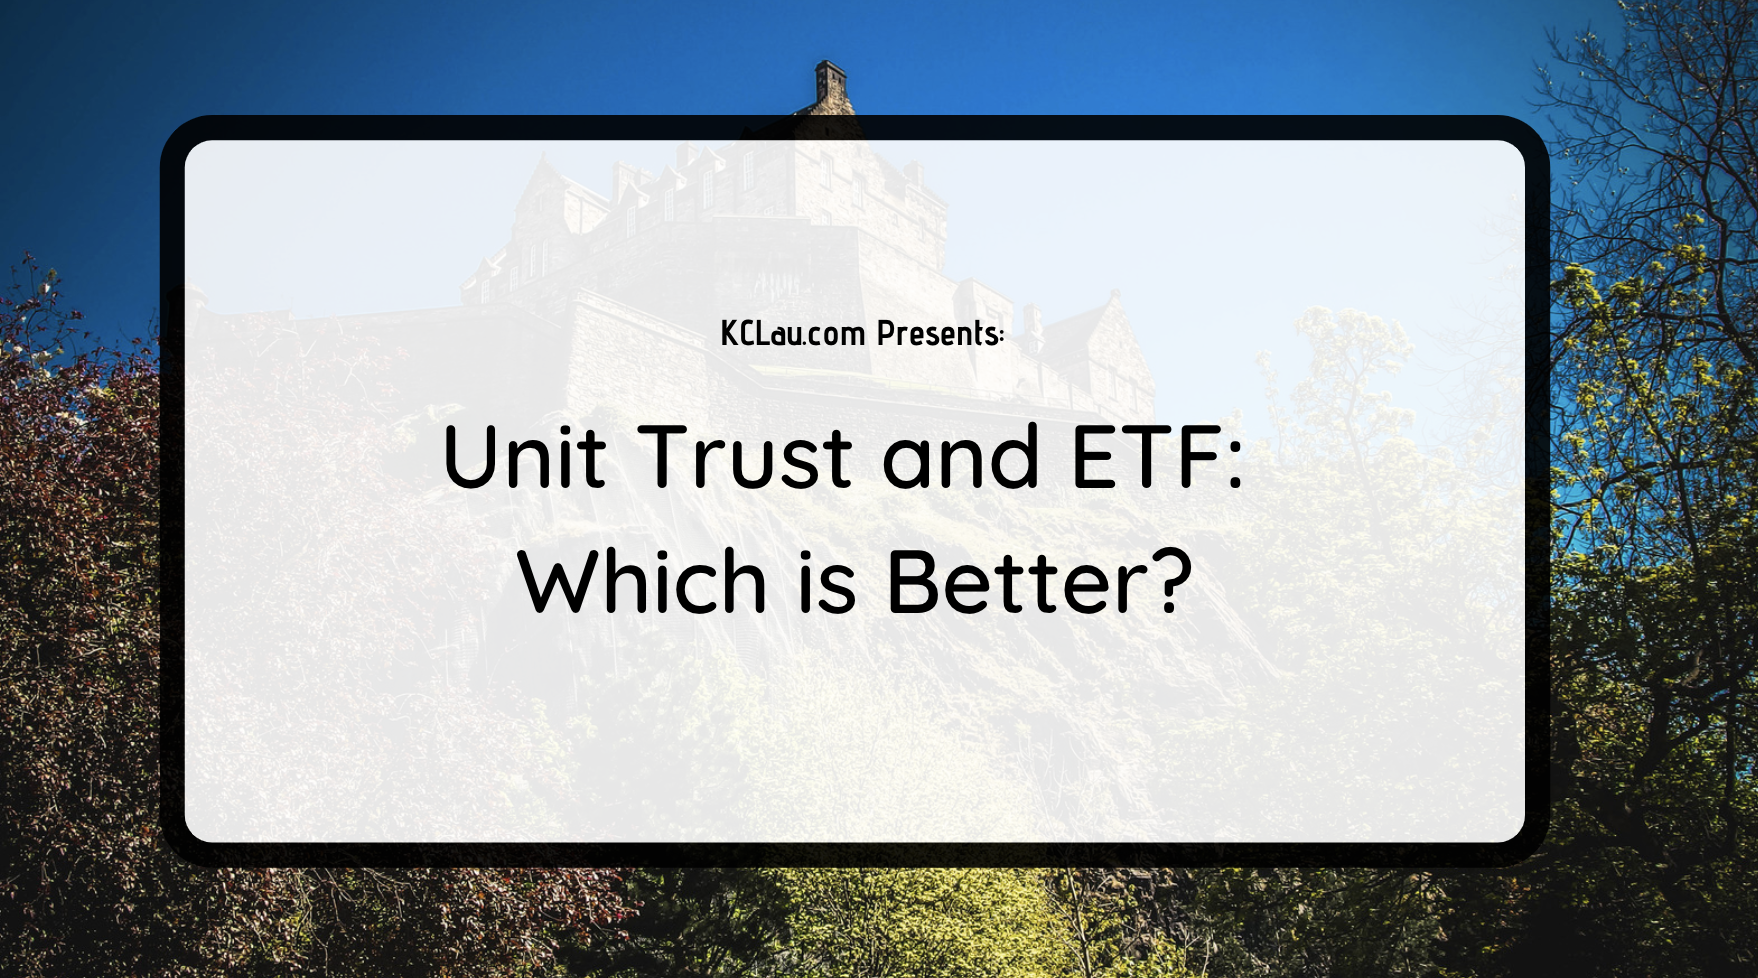 Unit Trust and ETF: Which is Better?